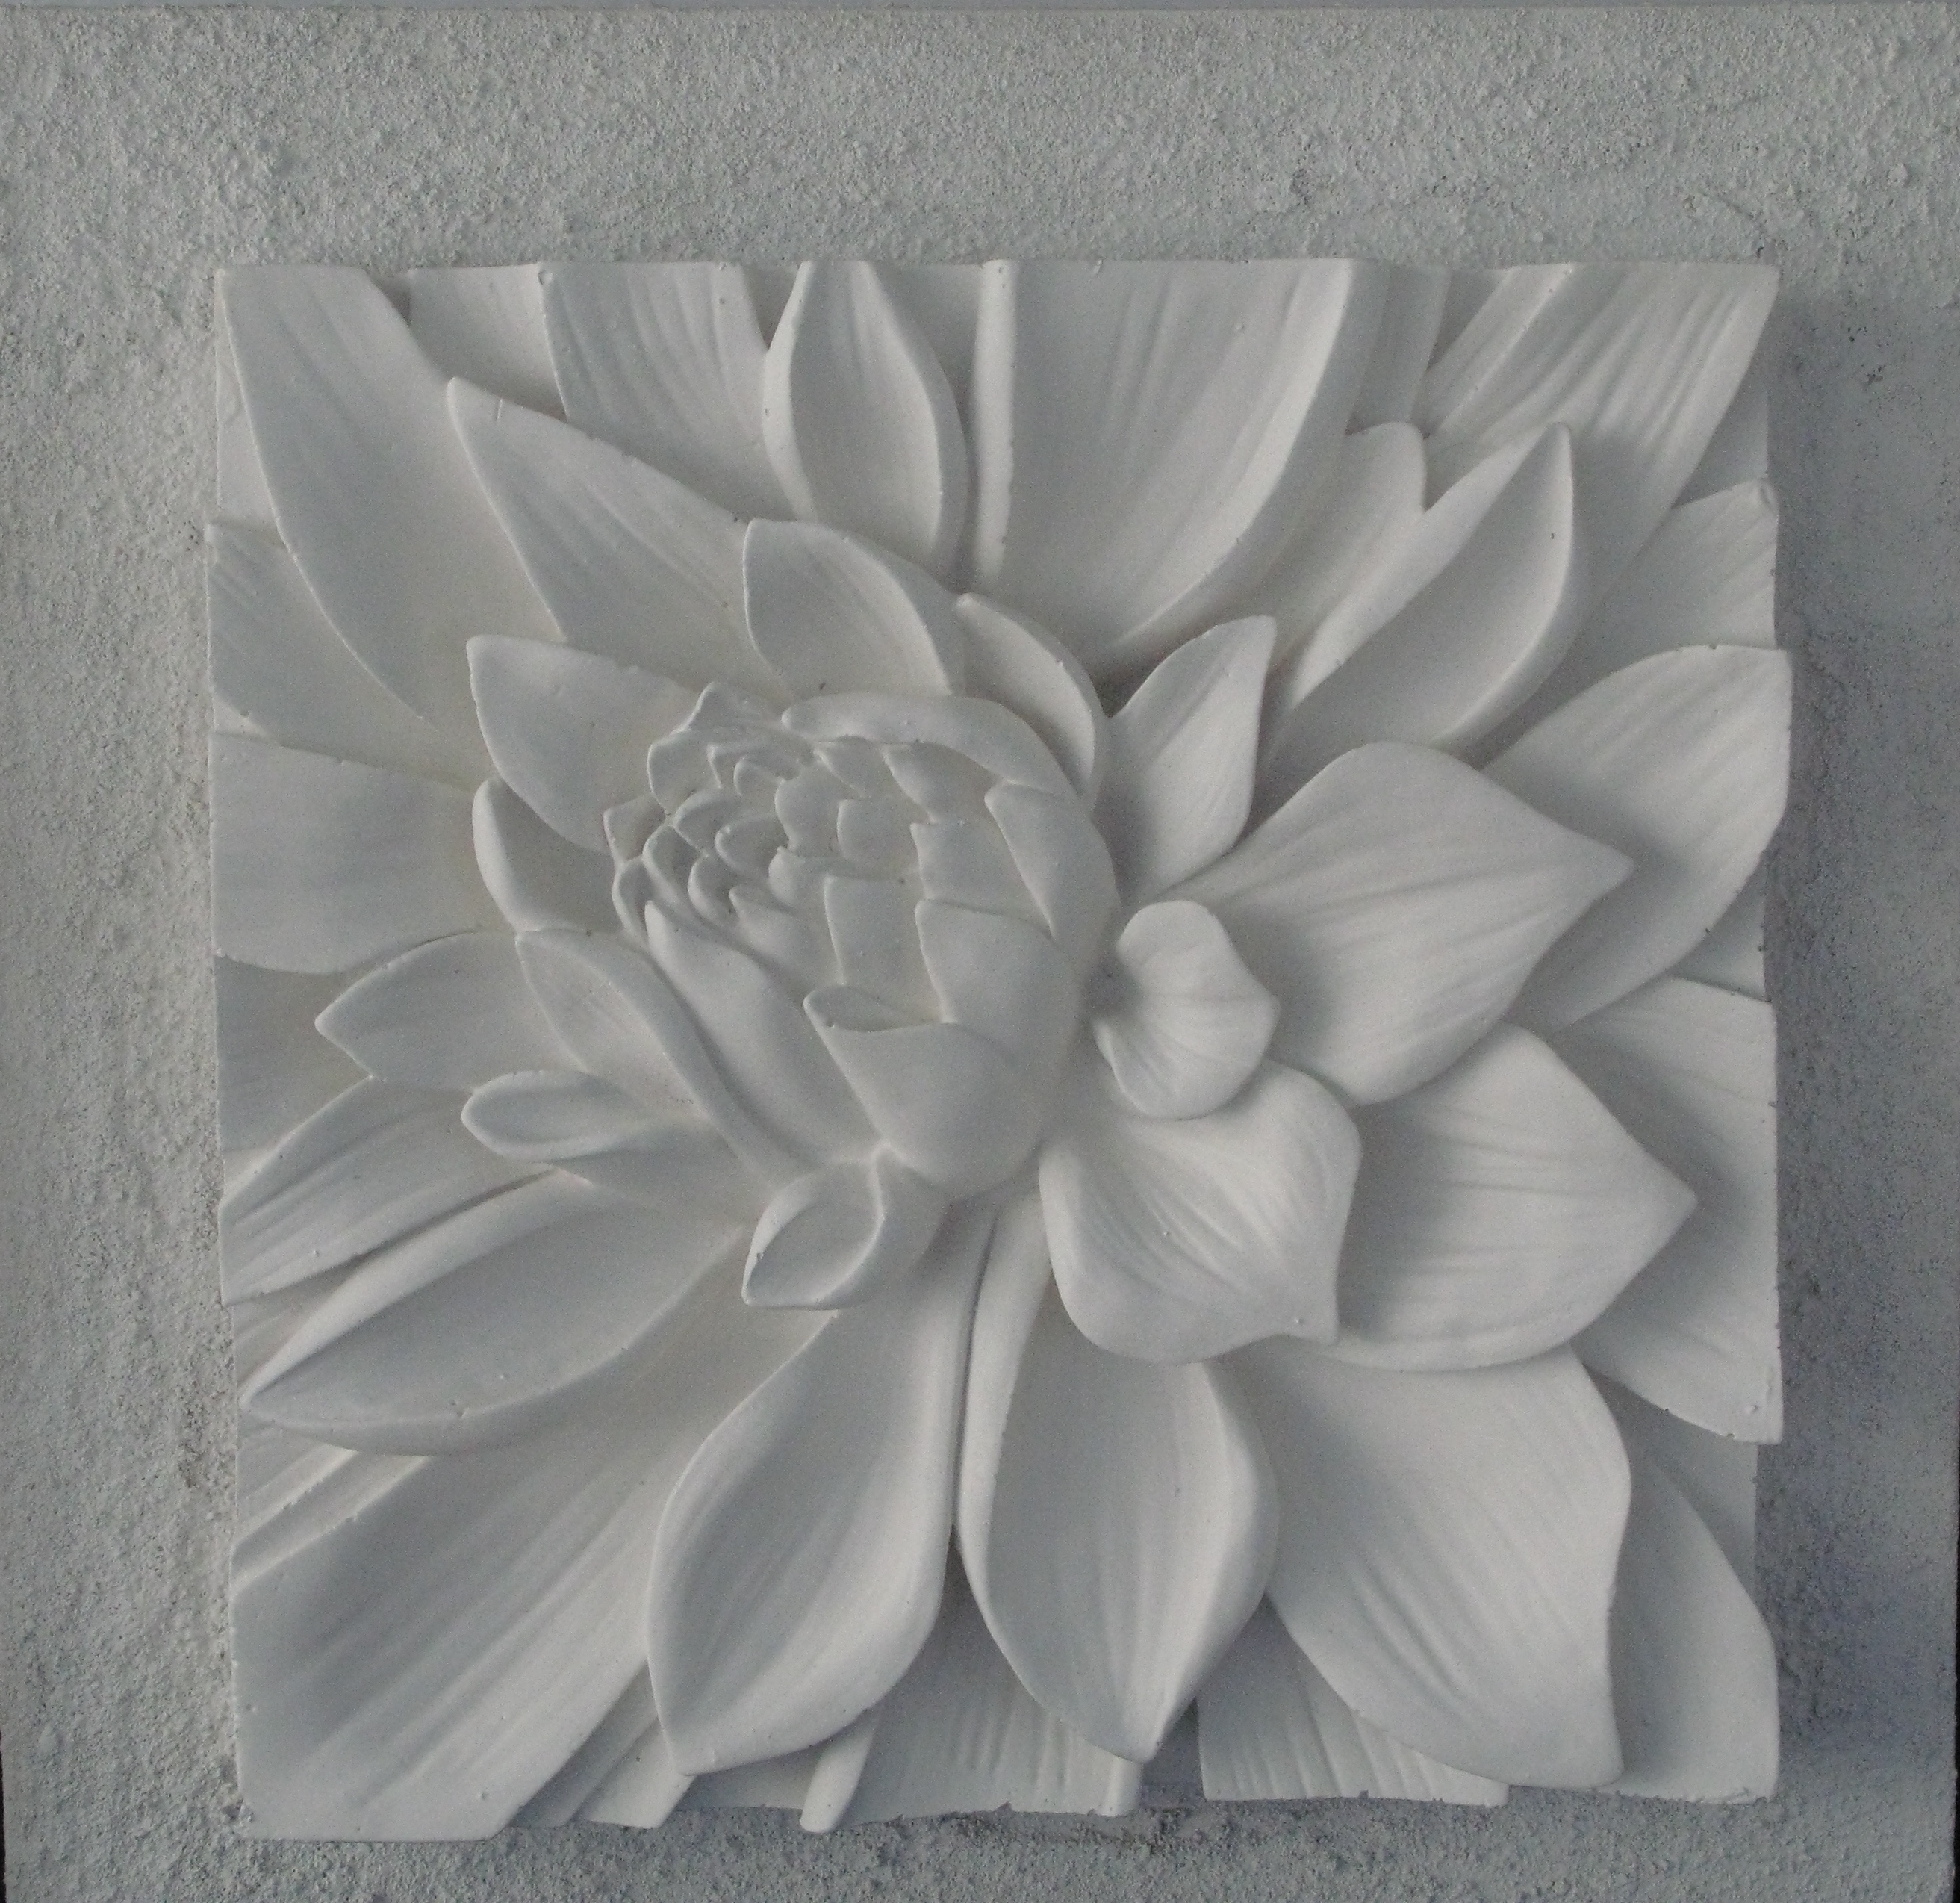 Well Known Plaster On Canvas 3D Art With Textured Background (View 15 of 15)